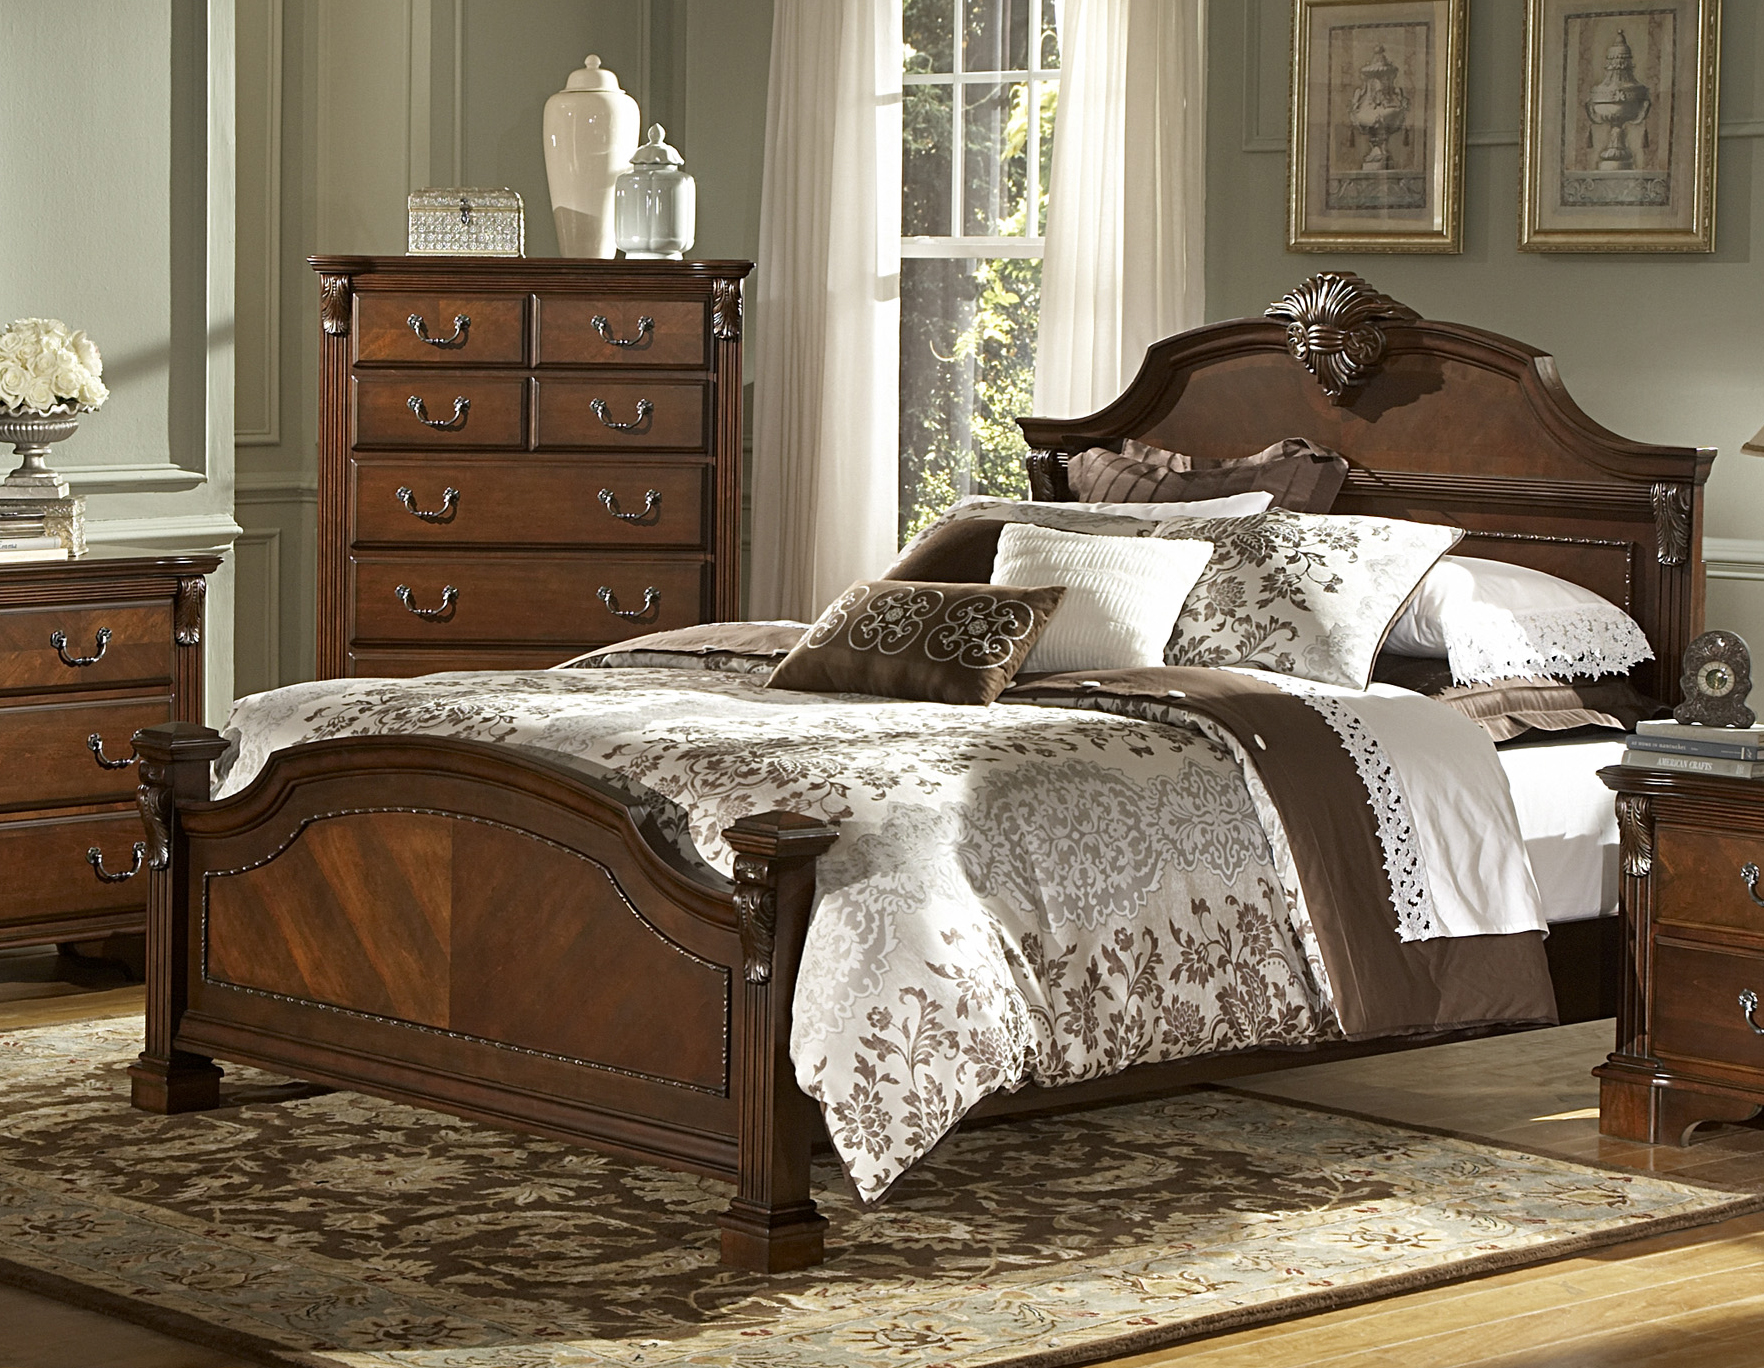 legacy cherry king bed dallas tx bedroom bed furniture